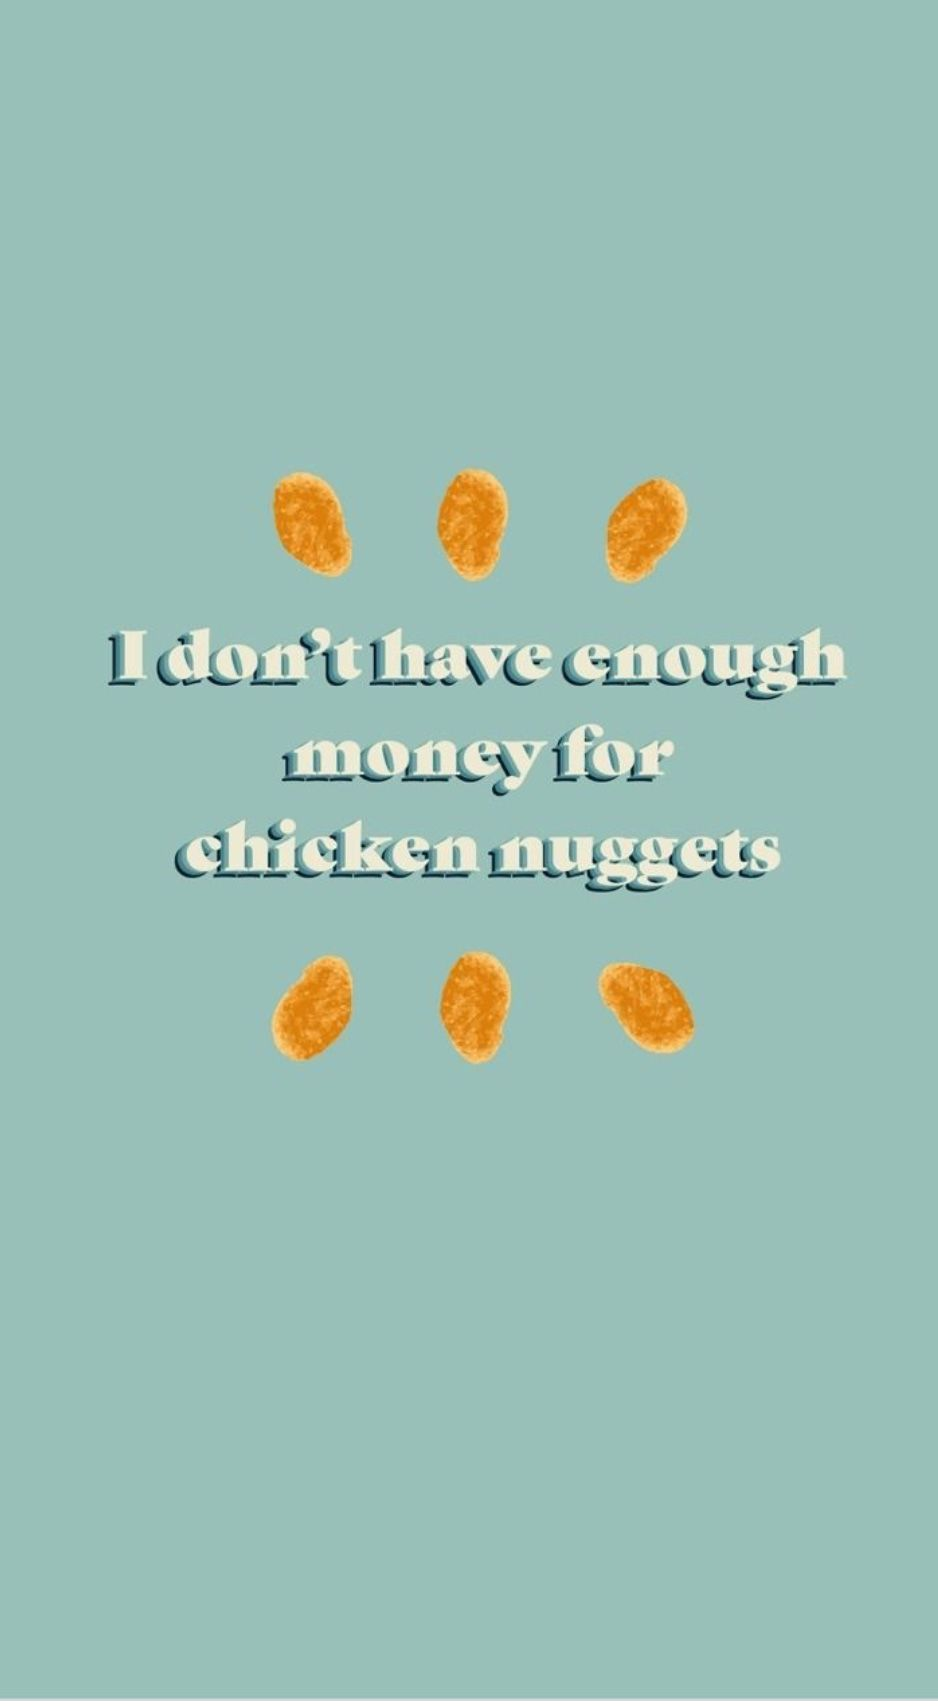 Pin By Sarah Biffin On Things I Find Funny For No Reason X Iphone Wallpaper Quotes Funny Funny Wallpapers Wallpaper Quotes